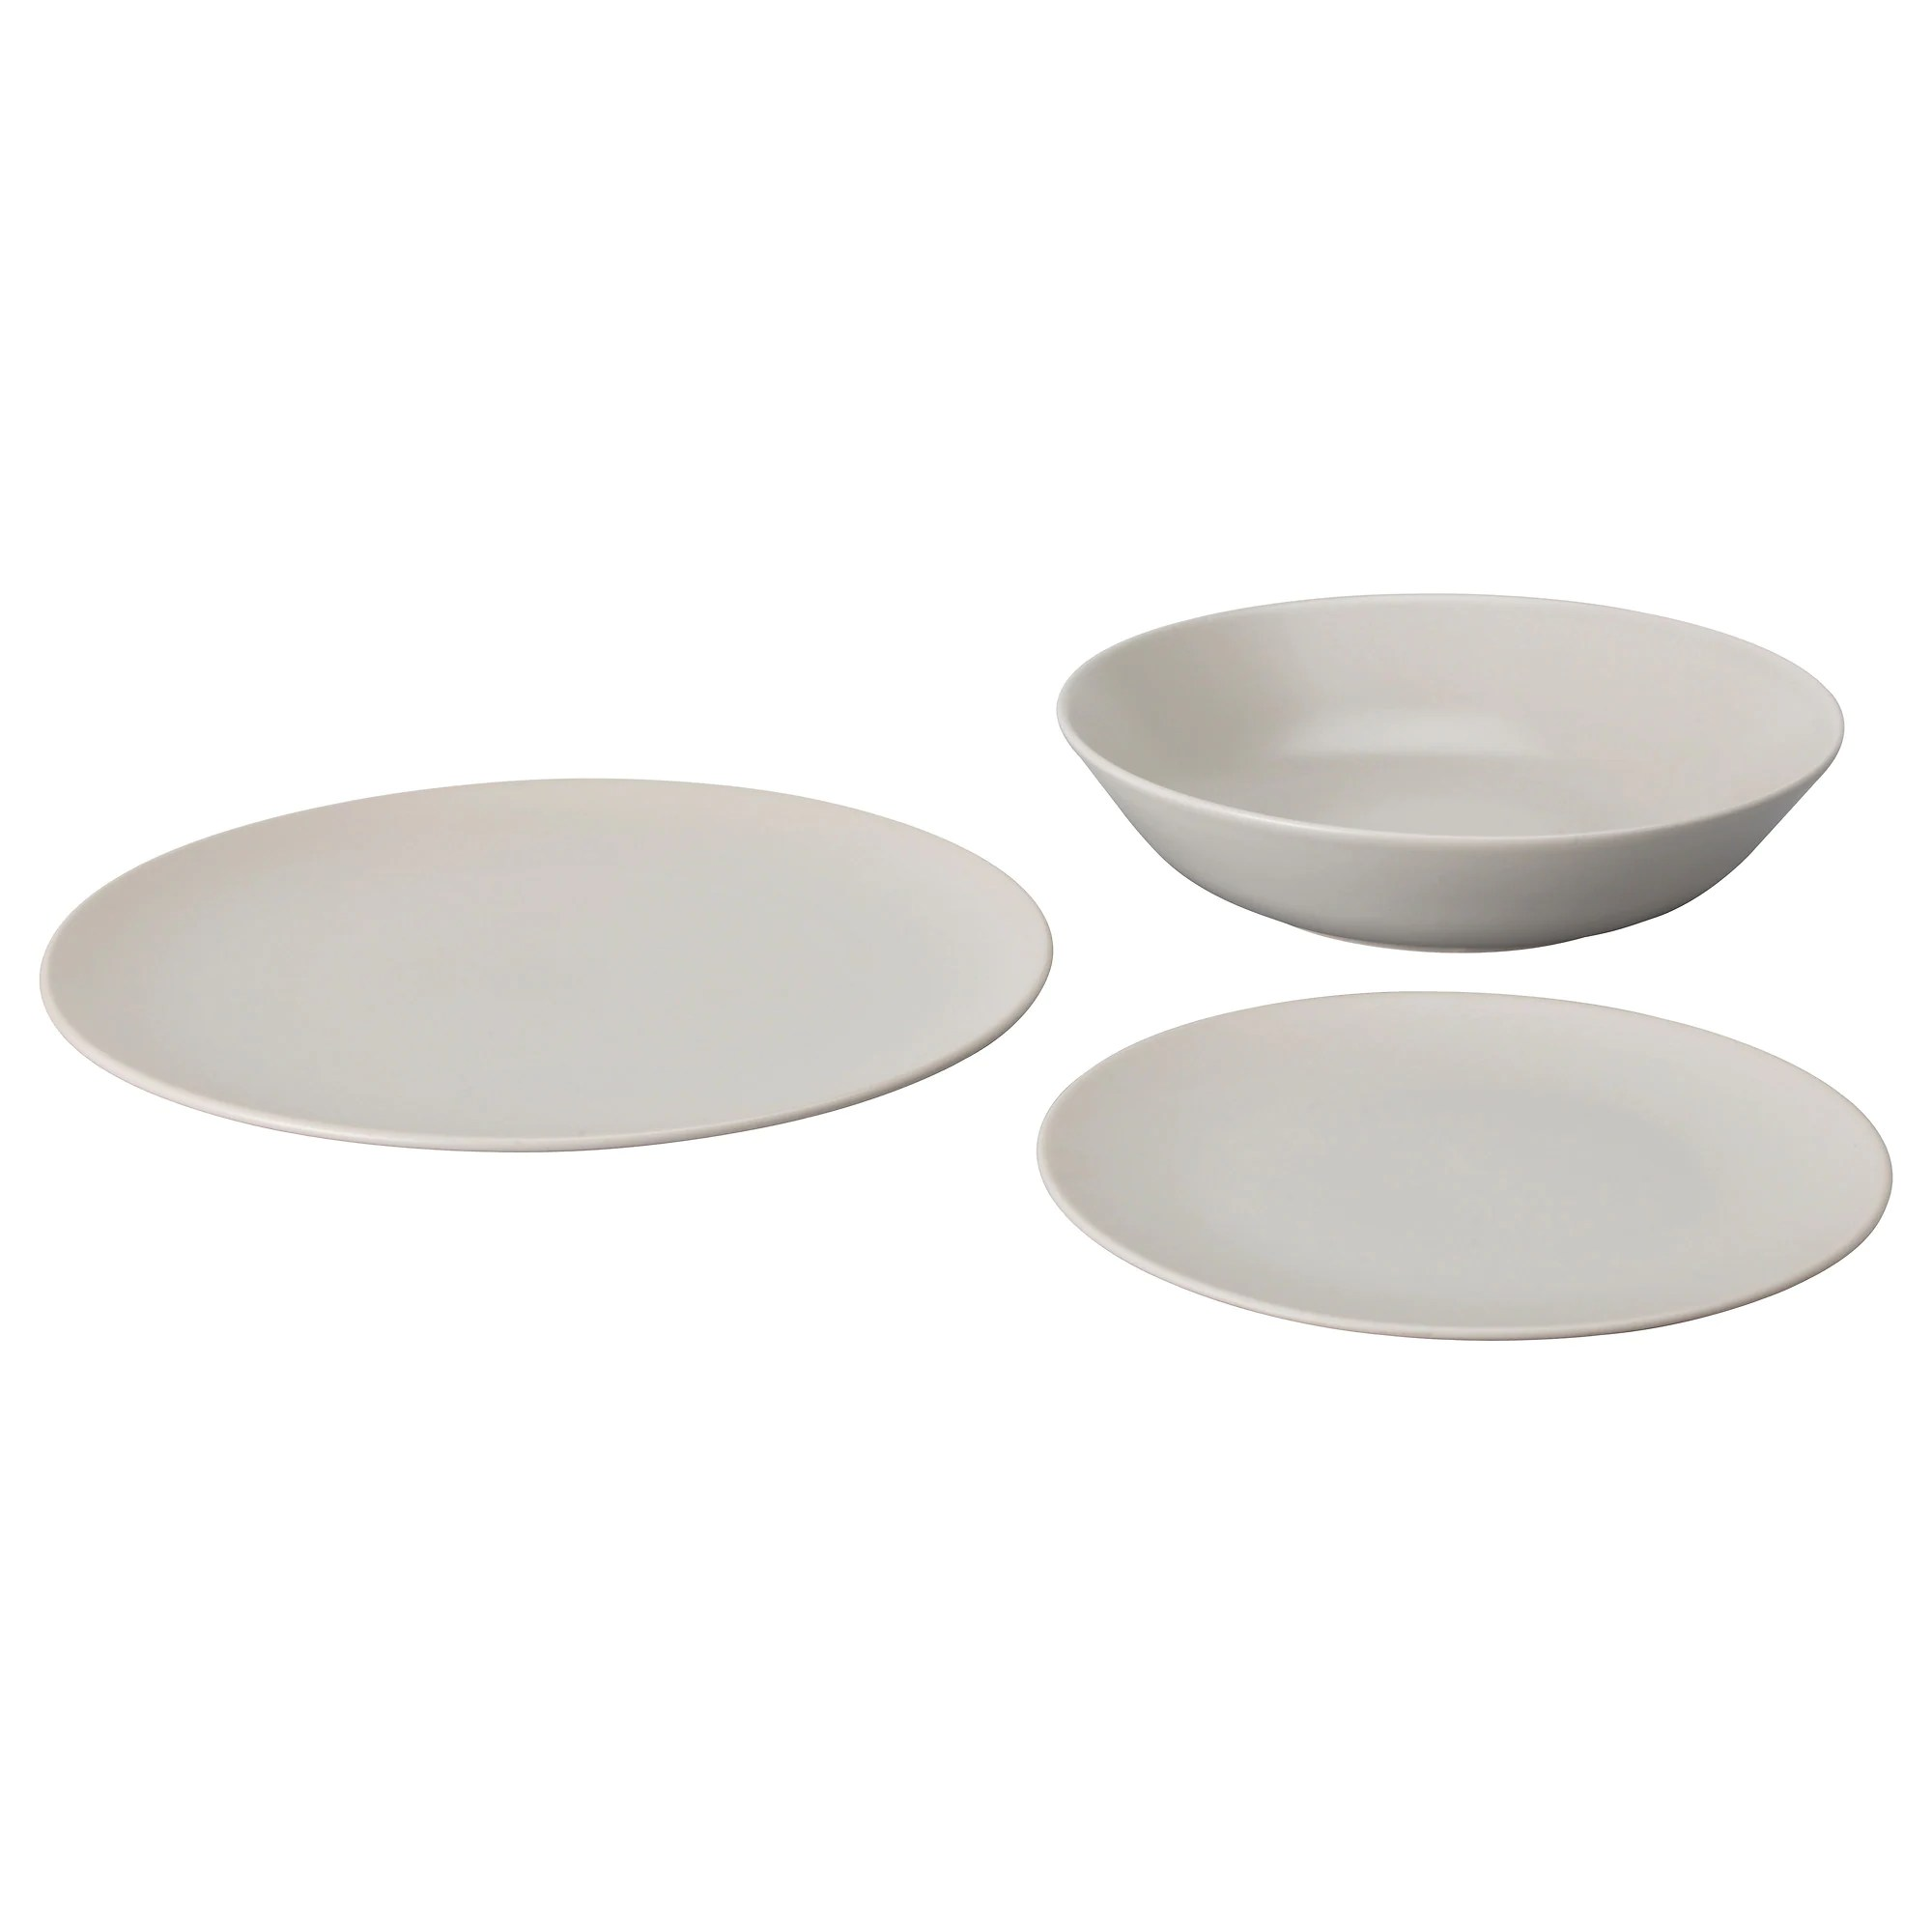 Ikea Vaisselle Porcelaine Set Assiettes Ikea Table De Lit